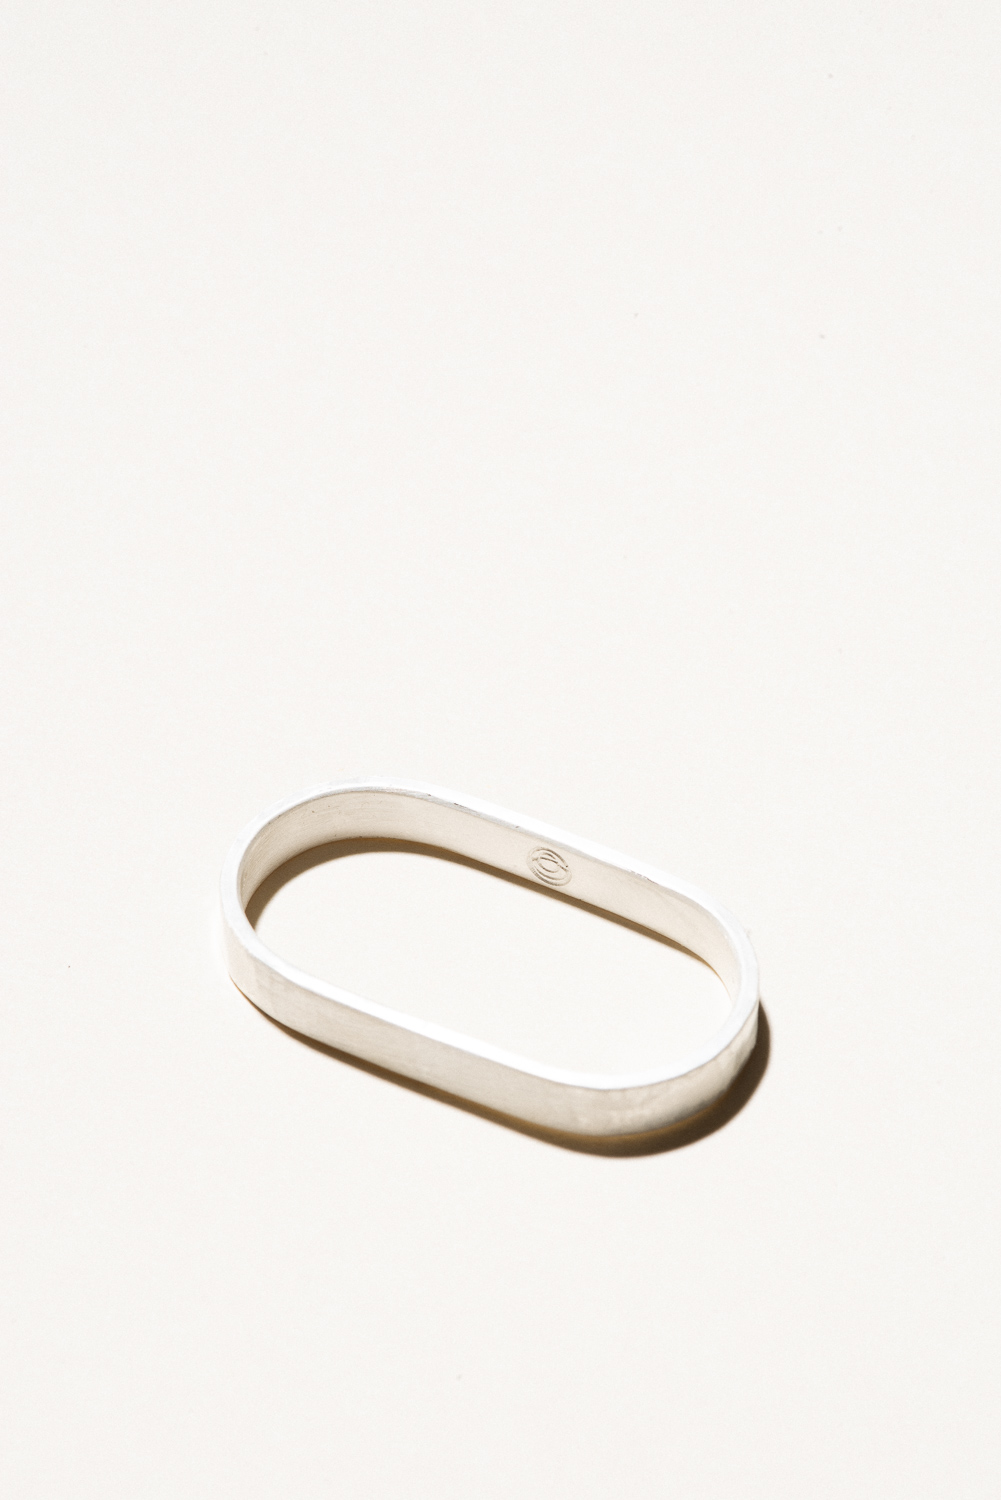 Two Finger Ring - 5mm wideSterling Silver, Raw FinishHand Smithed$125